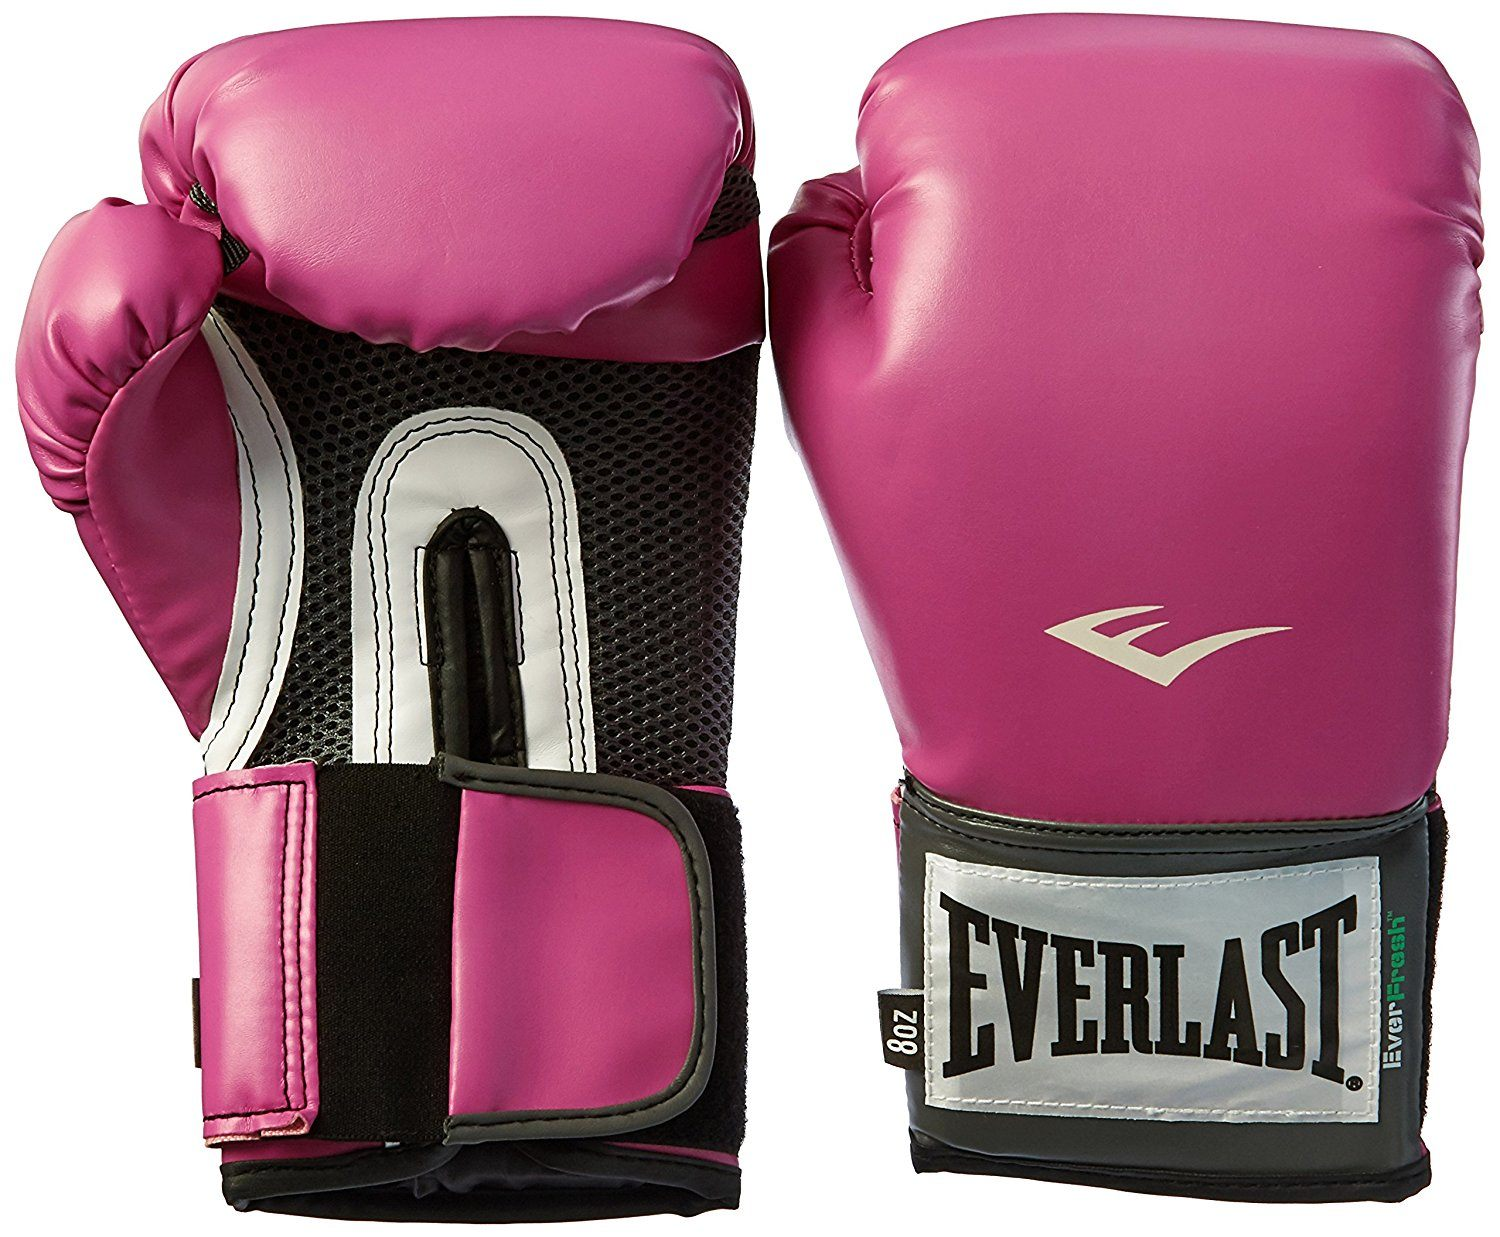 Shiv Naresh Teens Boxing Gloves 12oz: Check This Out! Best Boxing Gloves For Beginners